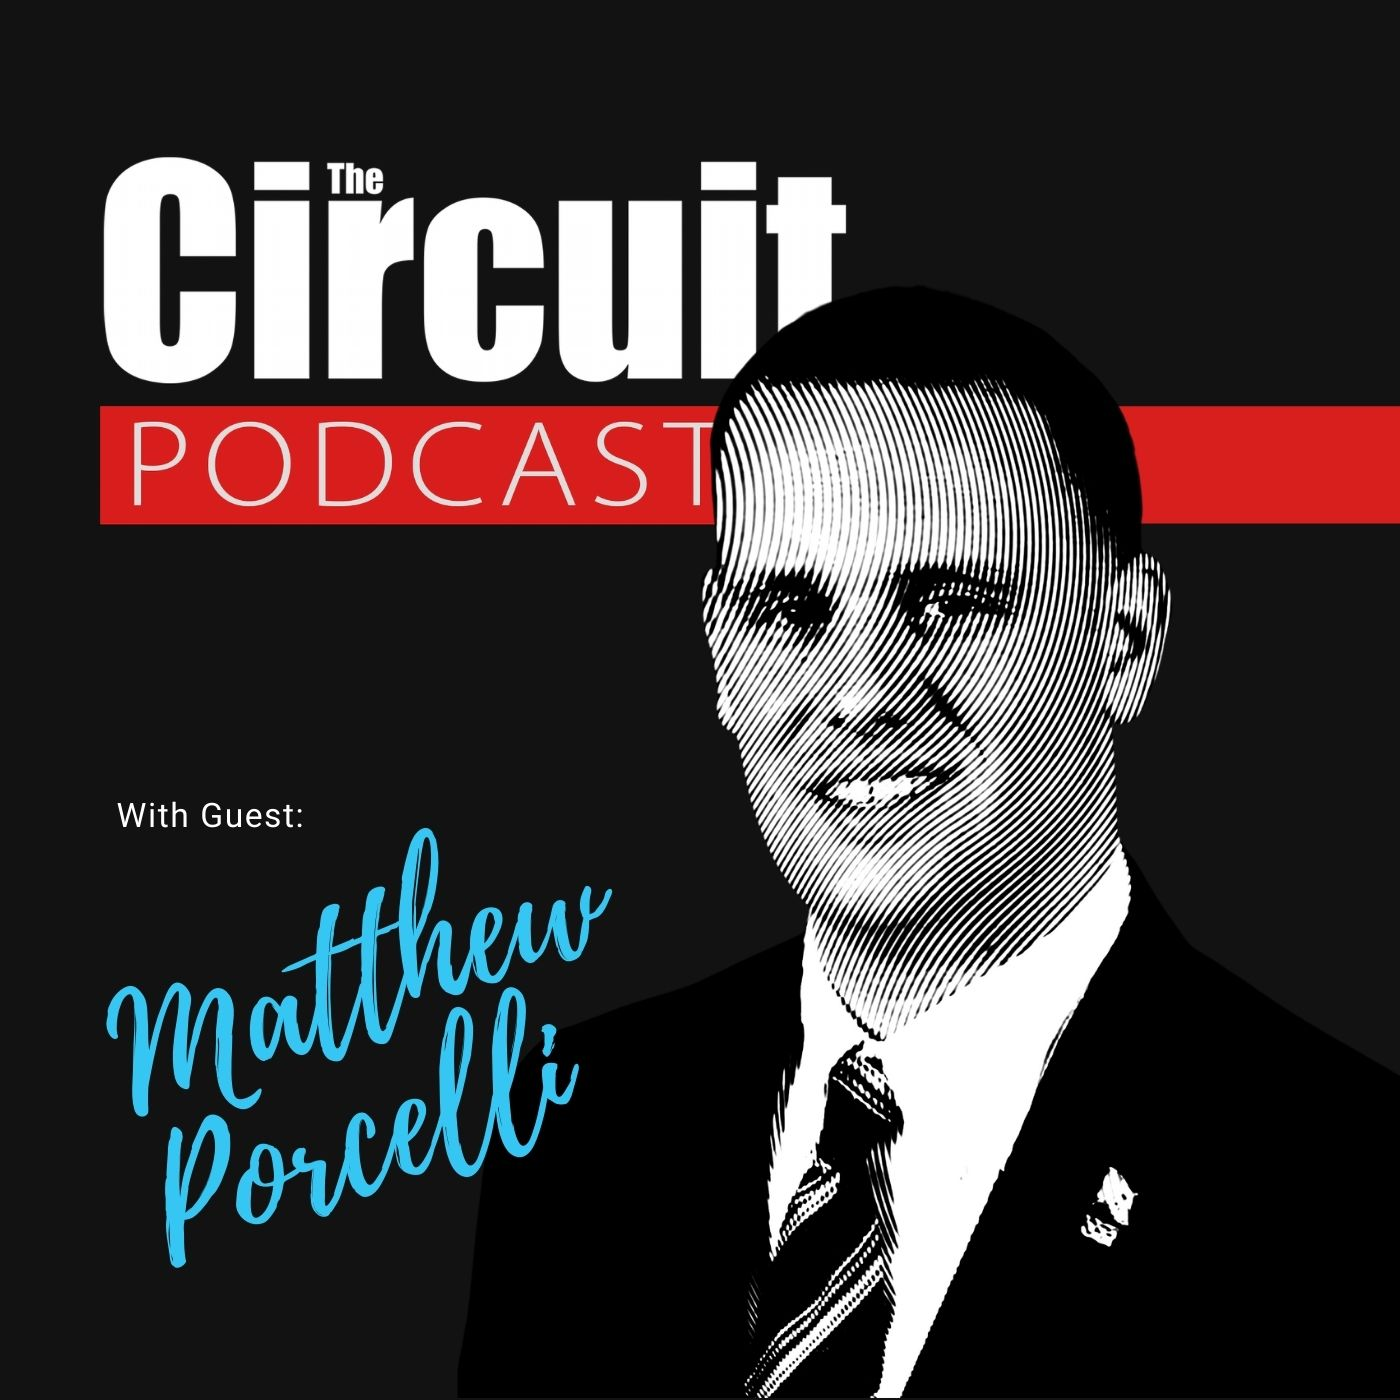 Artwork for podcast The Circuit Magazine Podcast